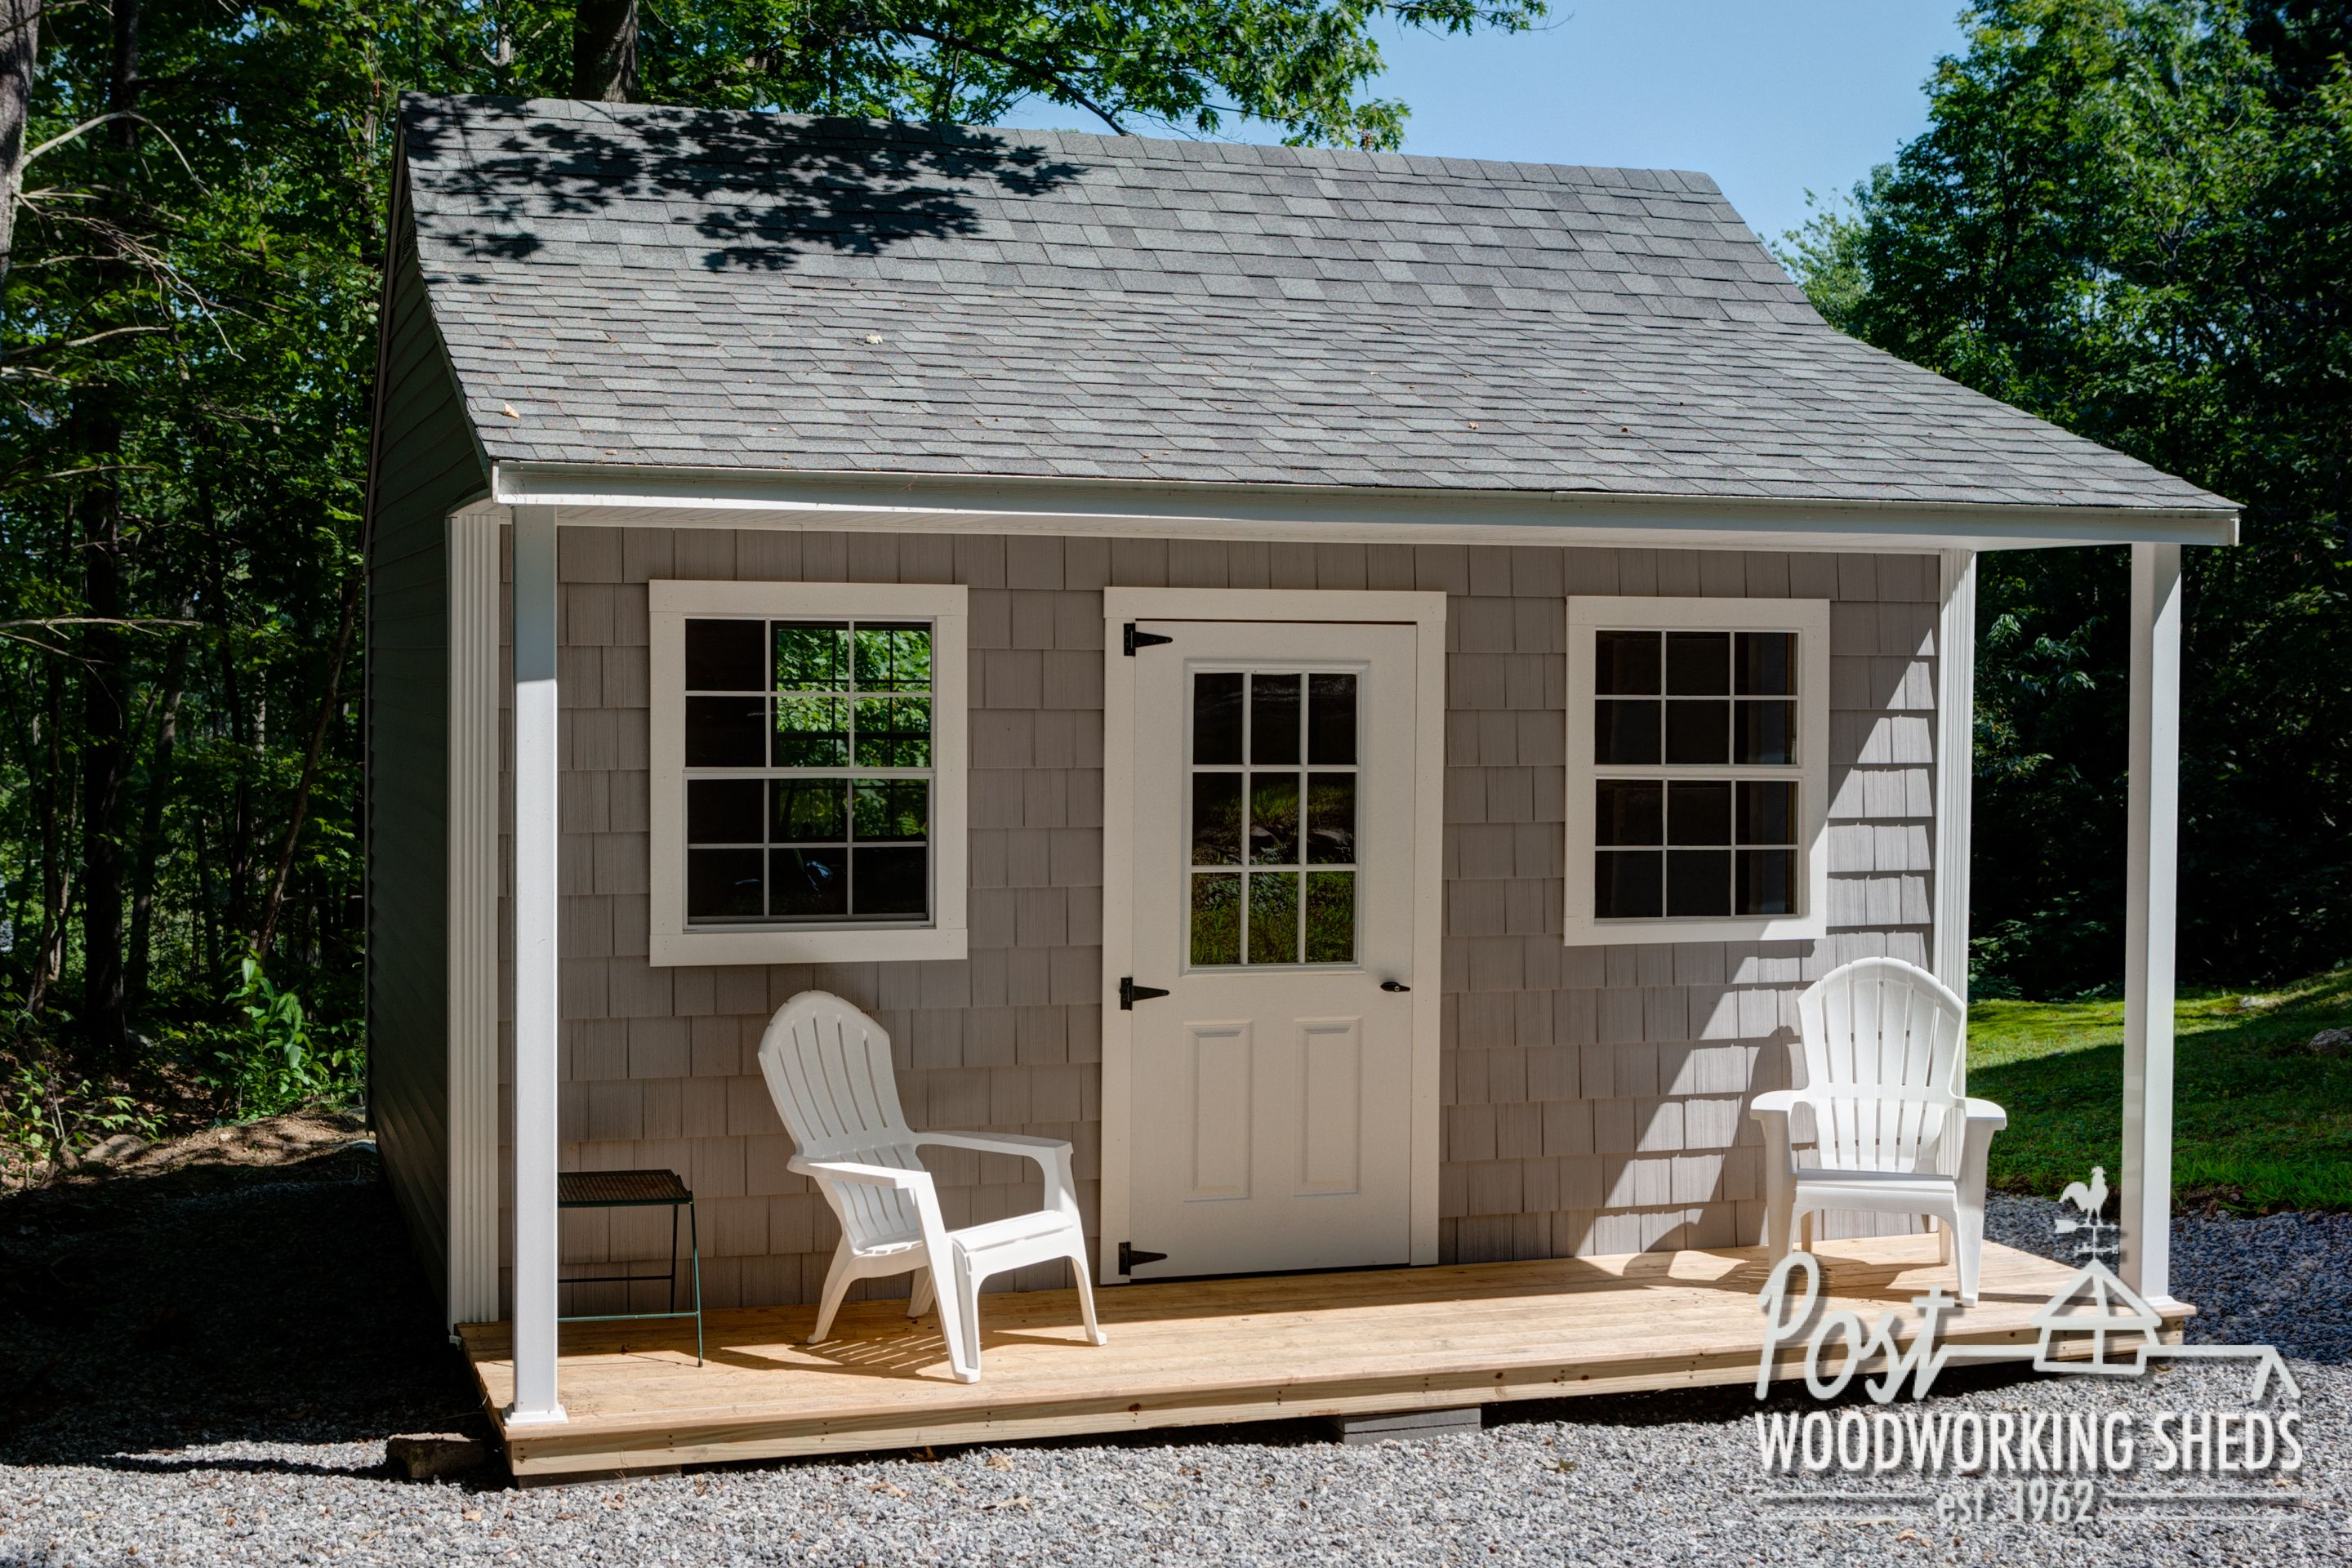 Vinyl shake shed with farmers porch post woodworking for Shed dormer house plans